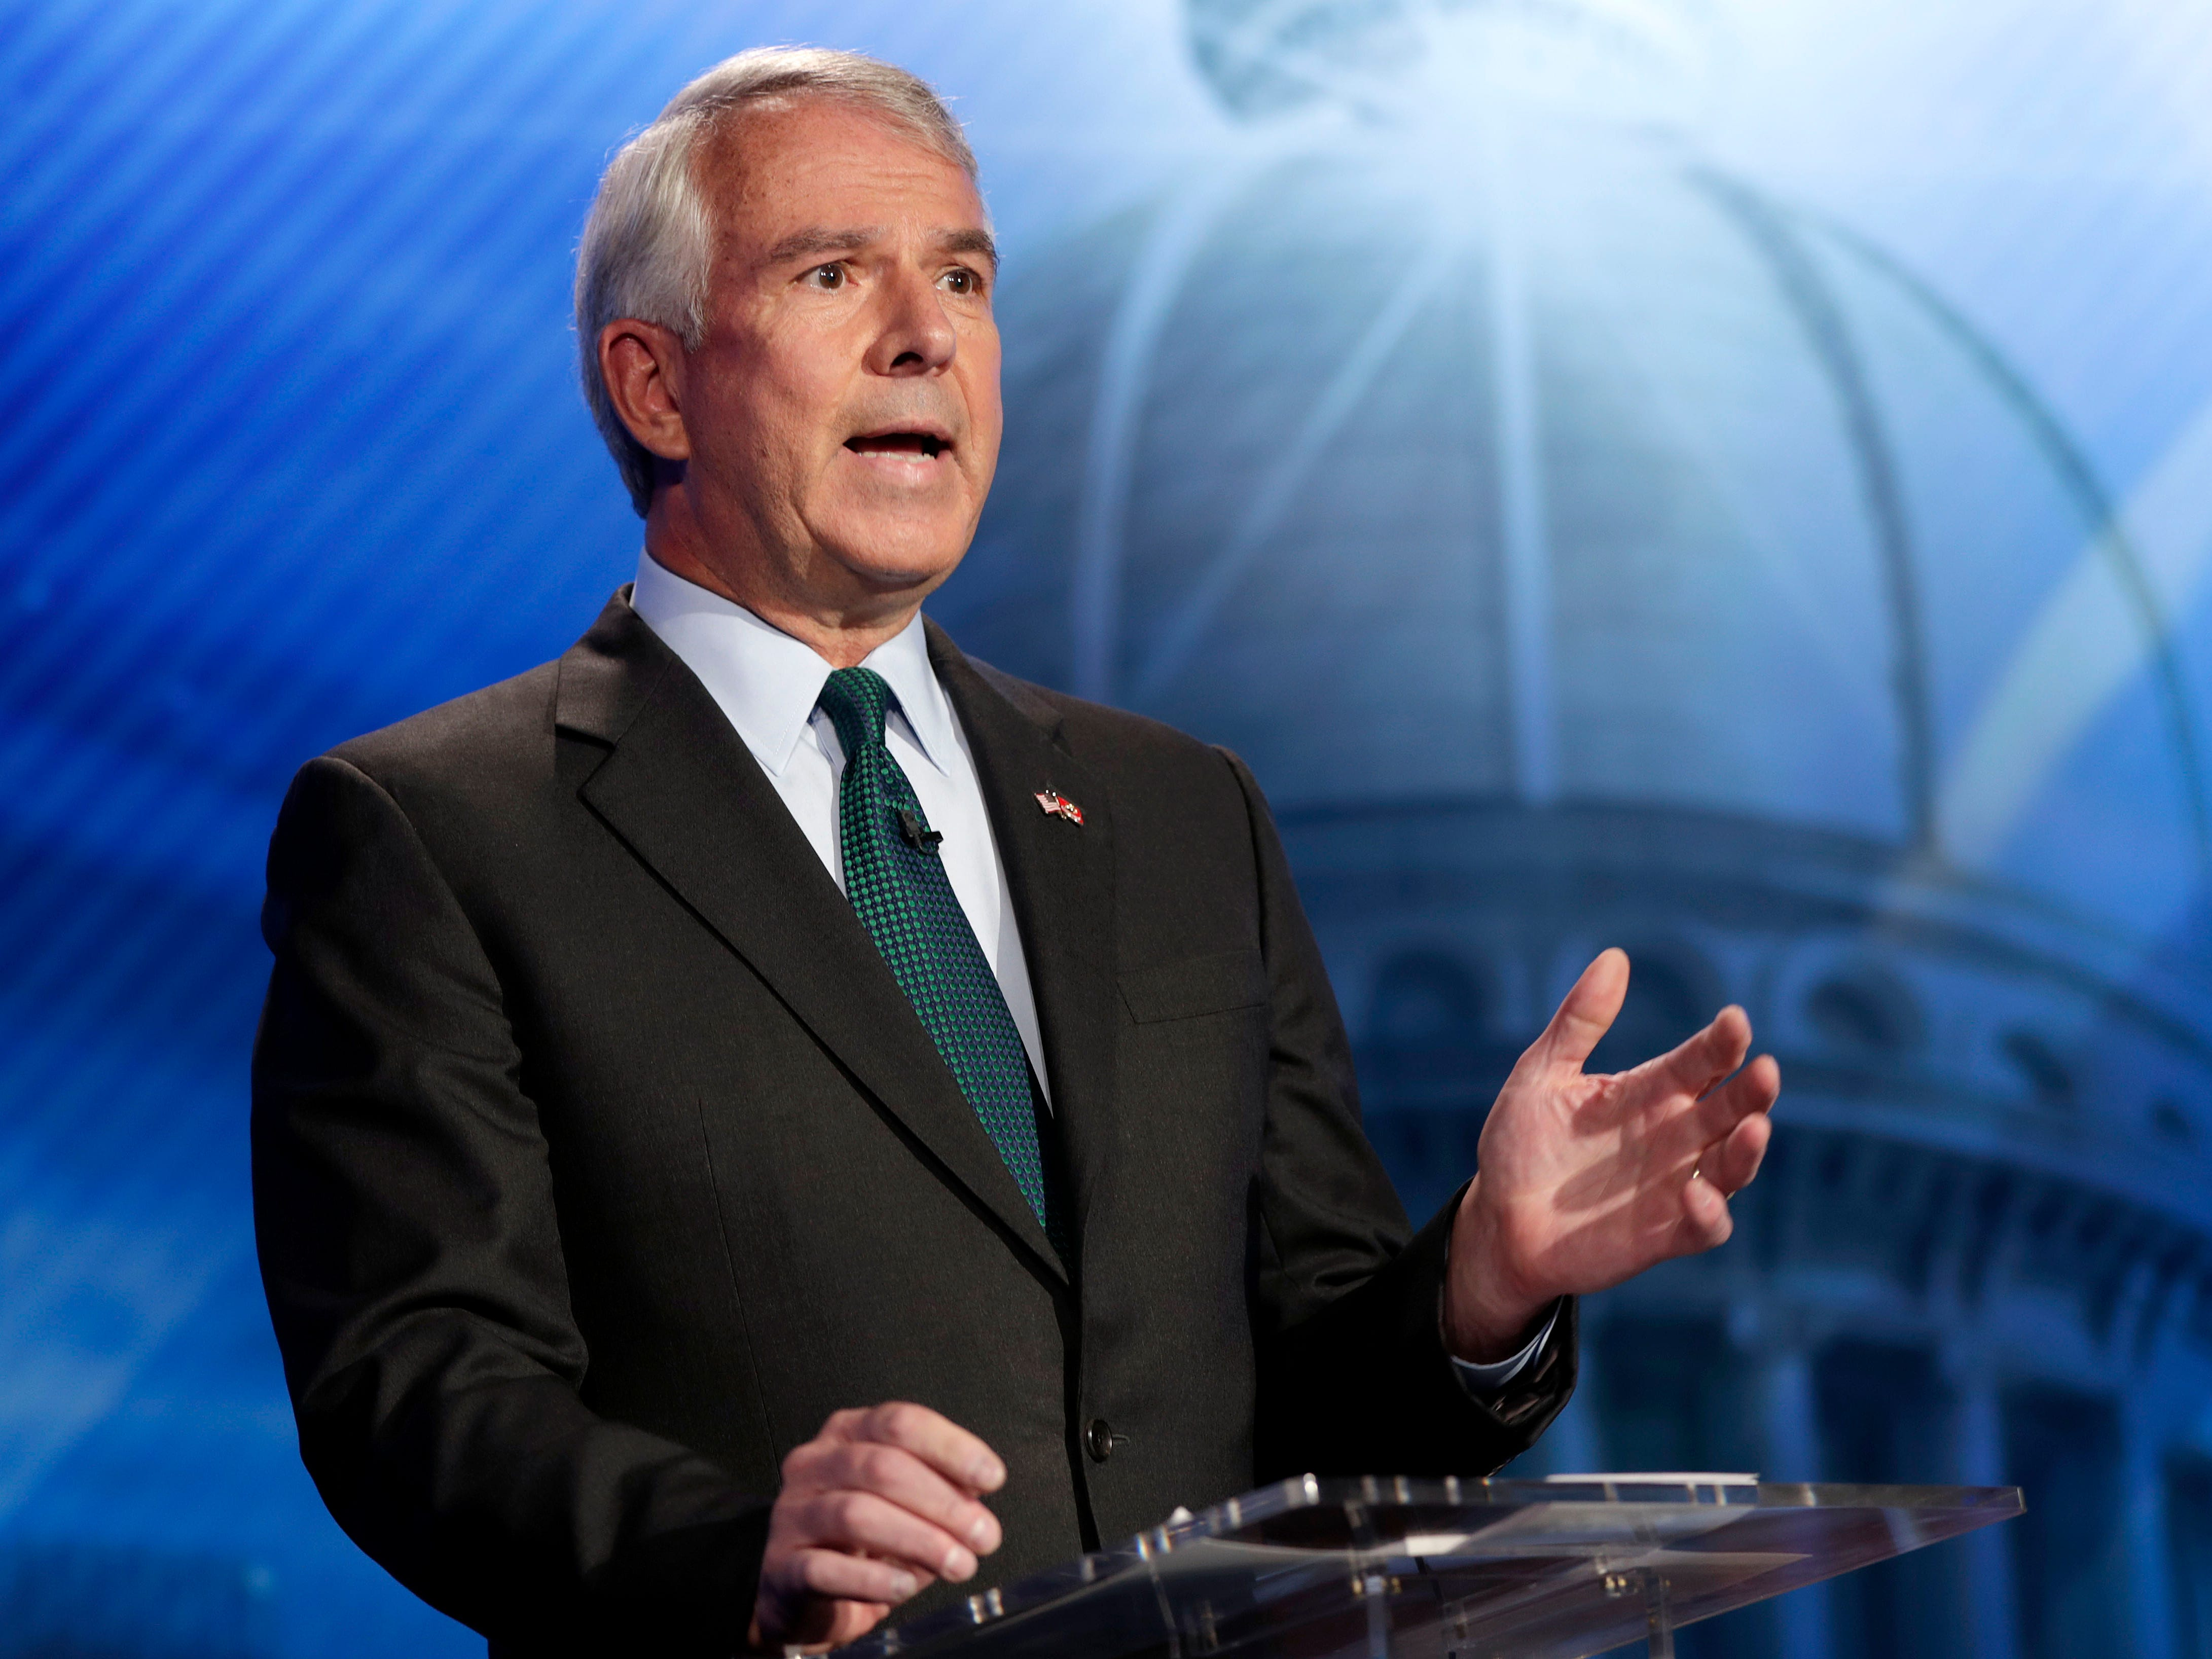 Bob Hugin, the Republican candidate for the U.S. Senate race in New Jersey, speaks during a debate with Sen. Bob Menendez, the Democrat candidate, Wednesday, Oct. 24, 2018, in Newark, N.J.